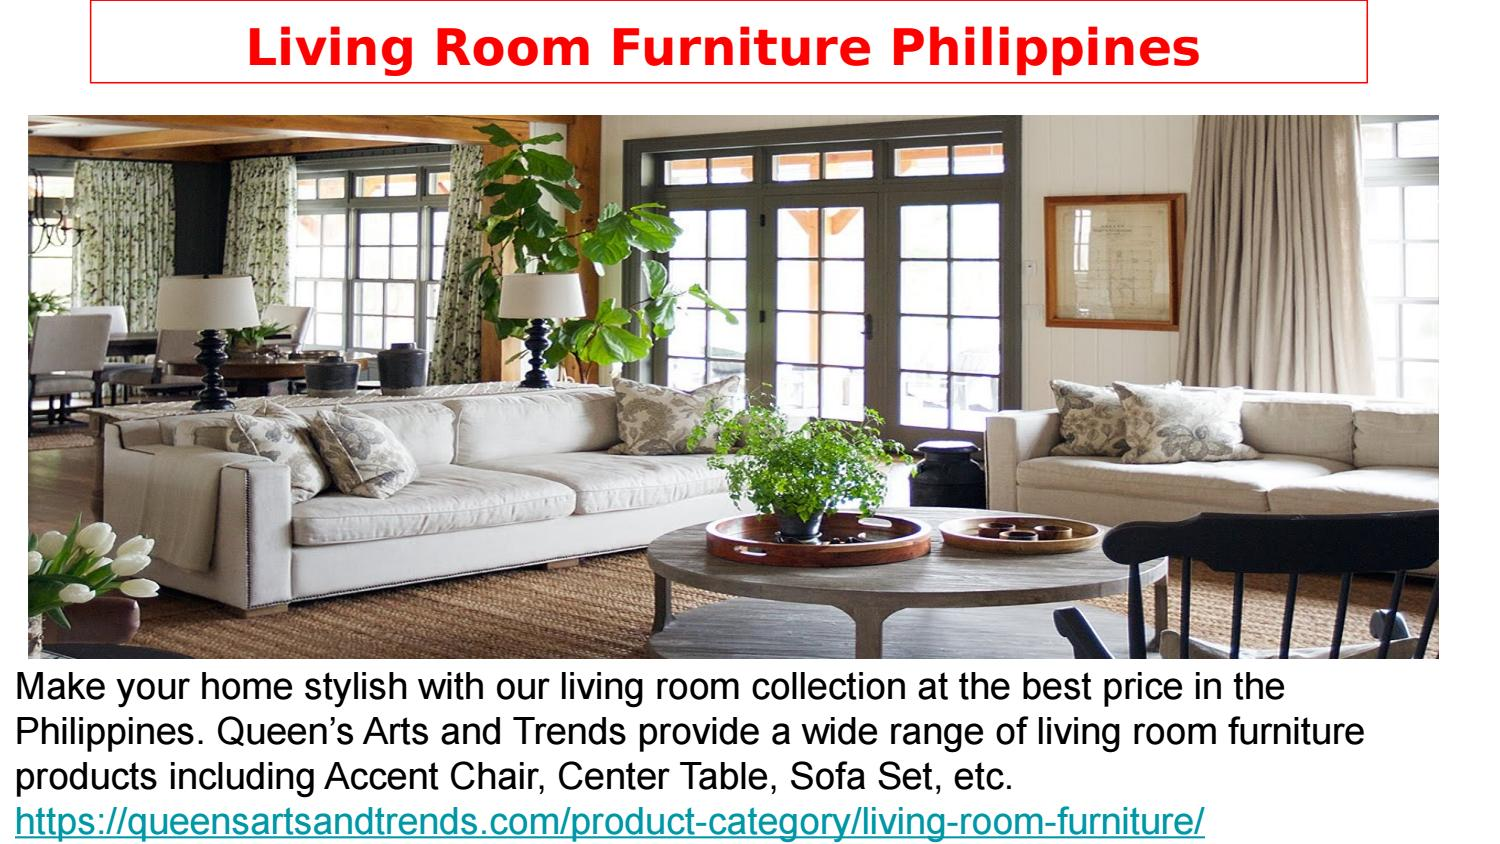 Living Room Furniture Philippines by queensartsandtrends - issuu